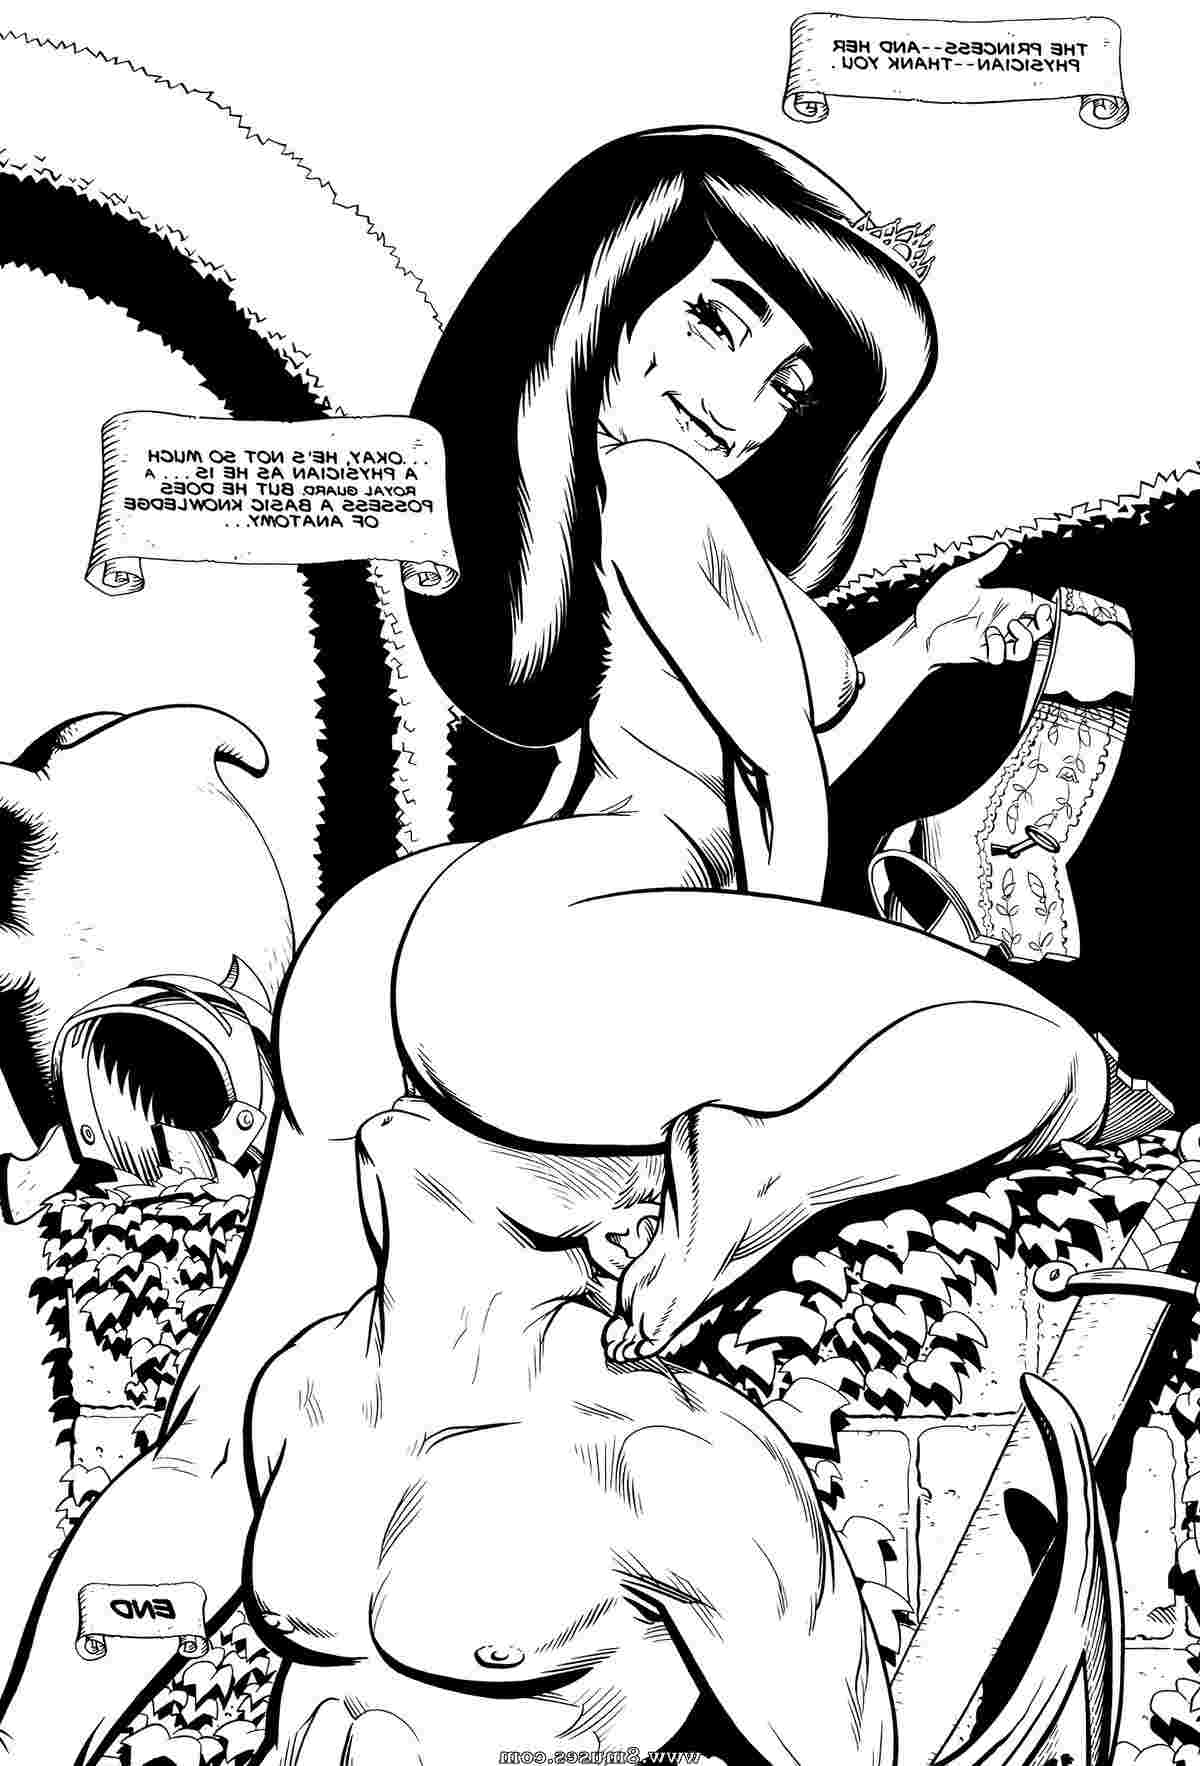 Amerotica-Comics/Short-Strokes Short_Strokes__8muses_-_Sex_and_Porn_Comics_26.jpg